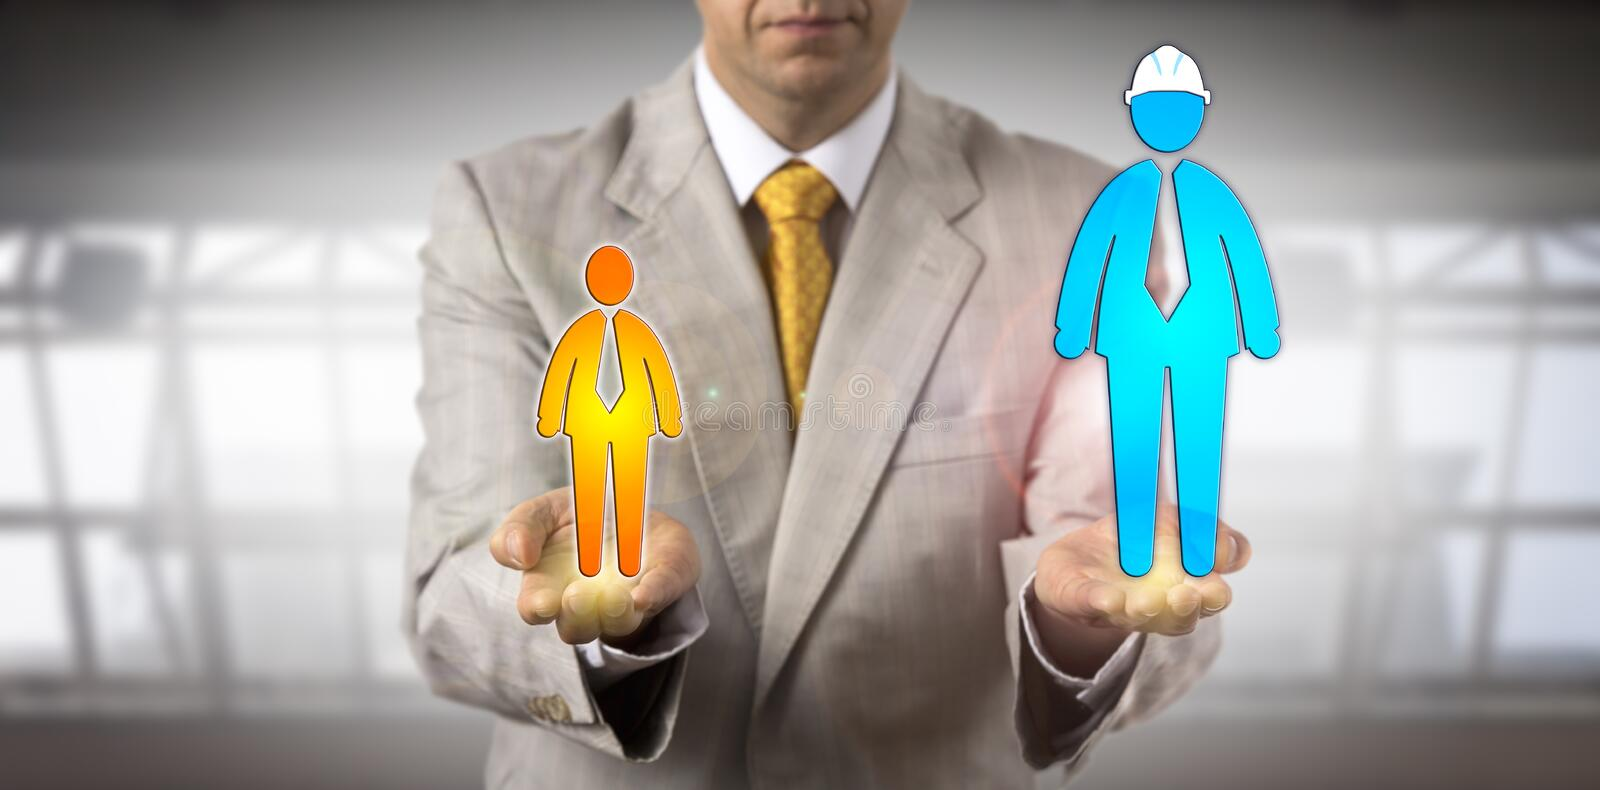 Mediator Balancing Huge Blue And White Collar. Unrecognizable mediator balancing a huge blue collar worker icon versus a smaller white collar employee. Concept royalty free stock photos